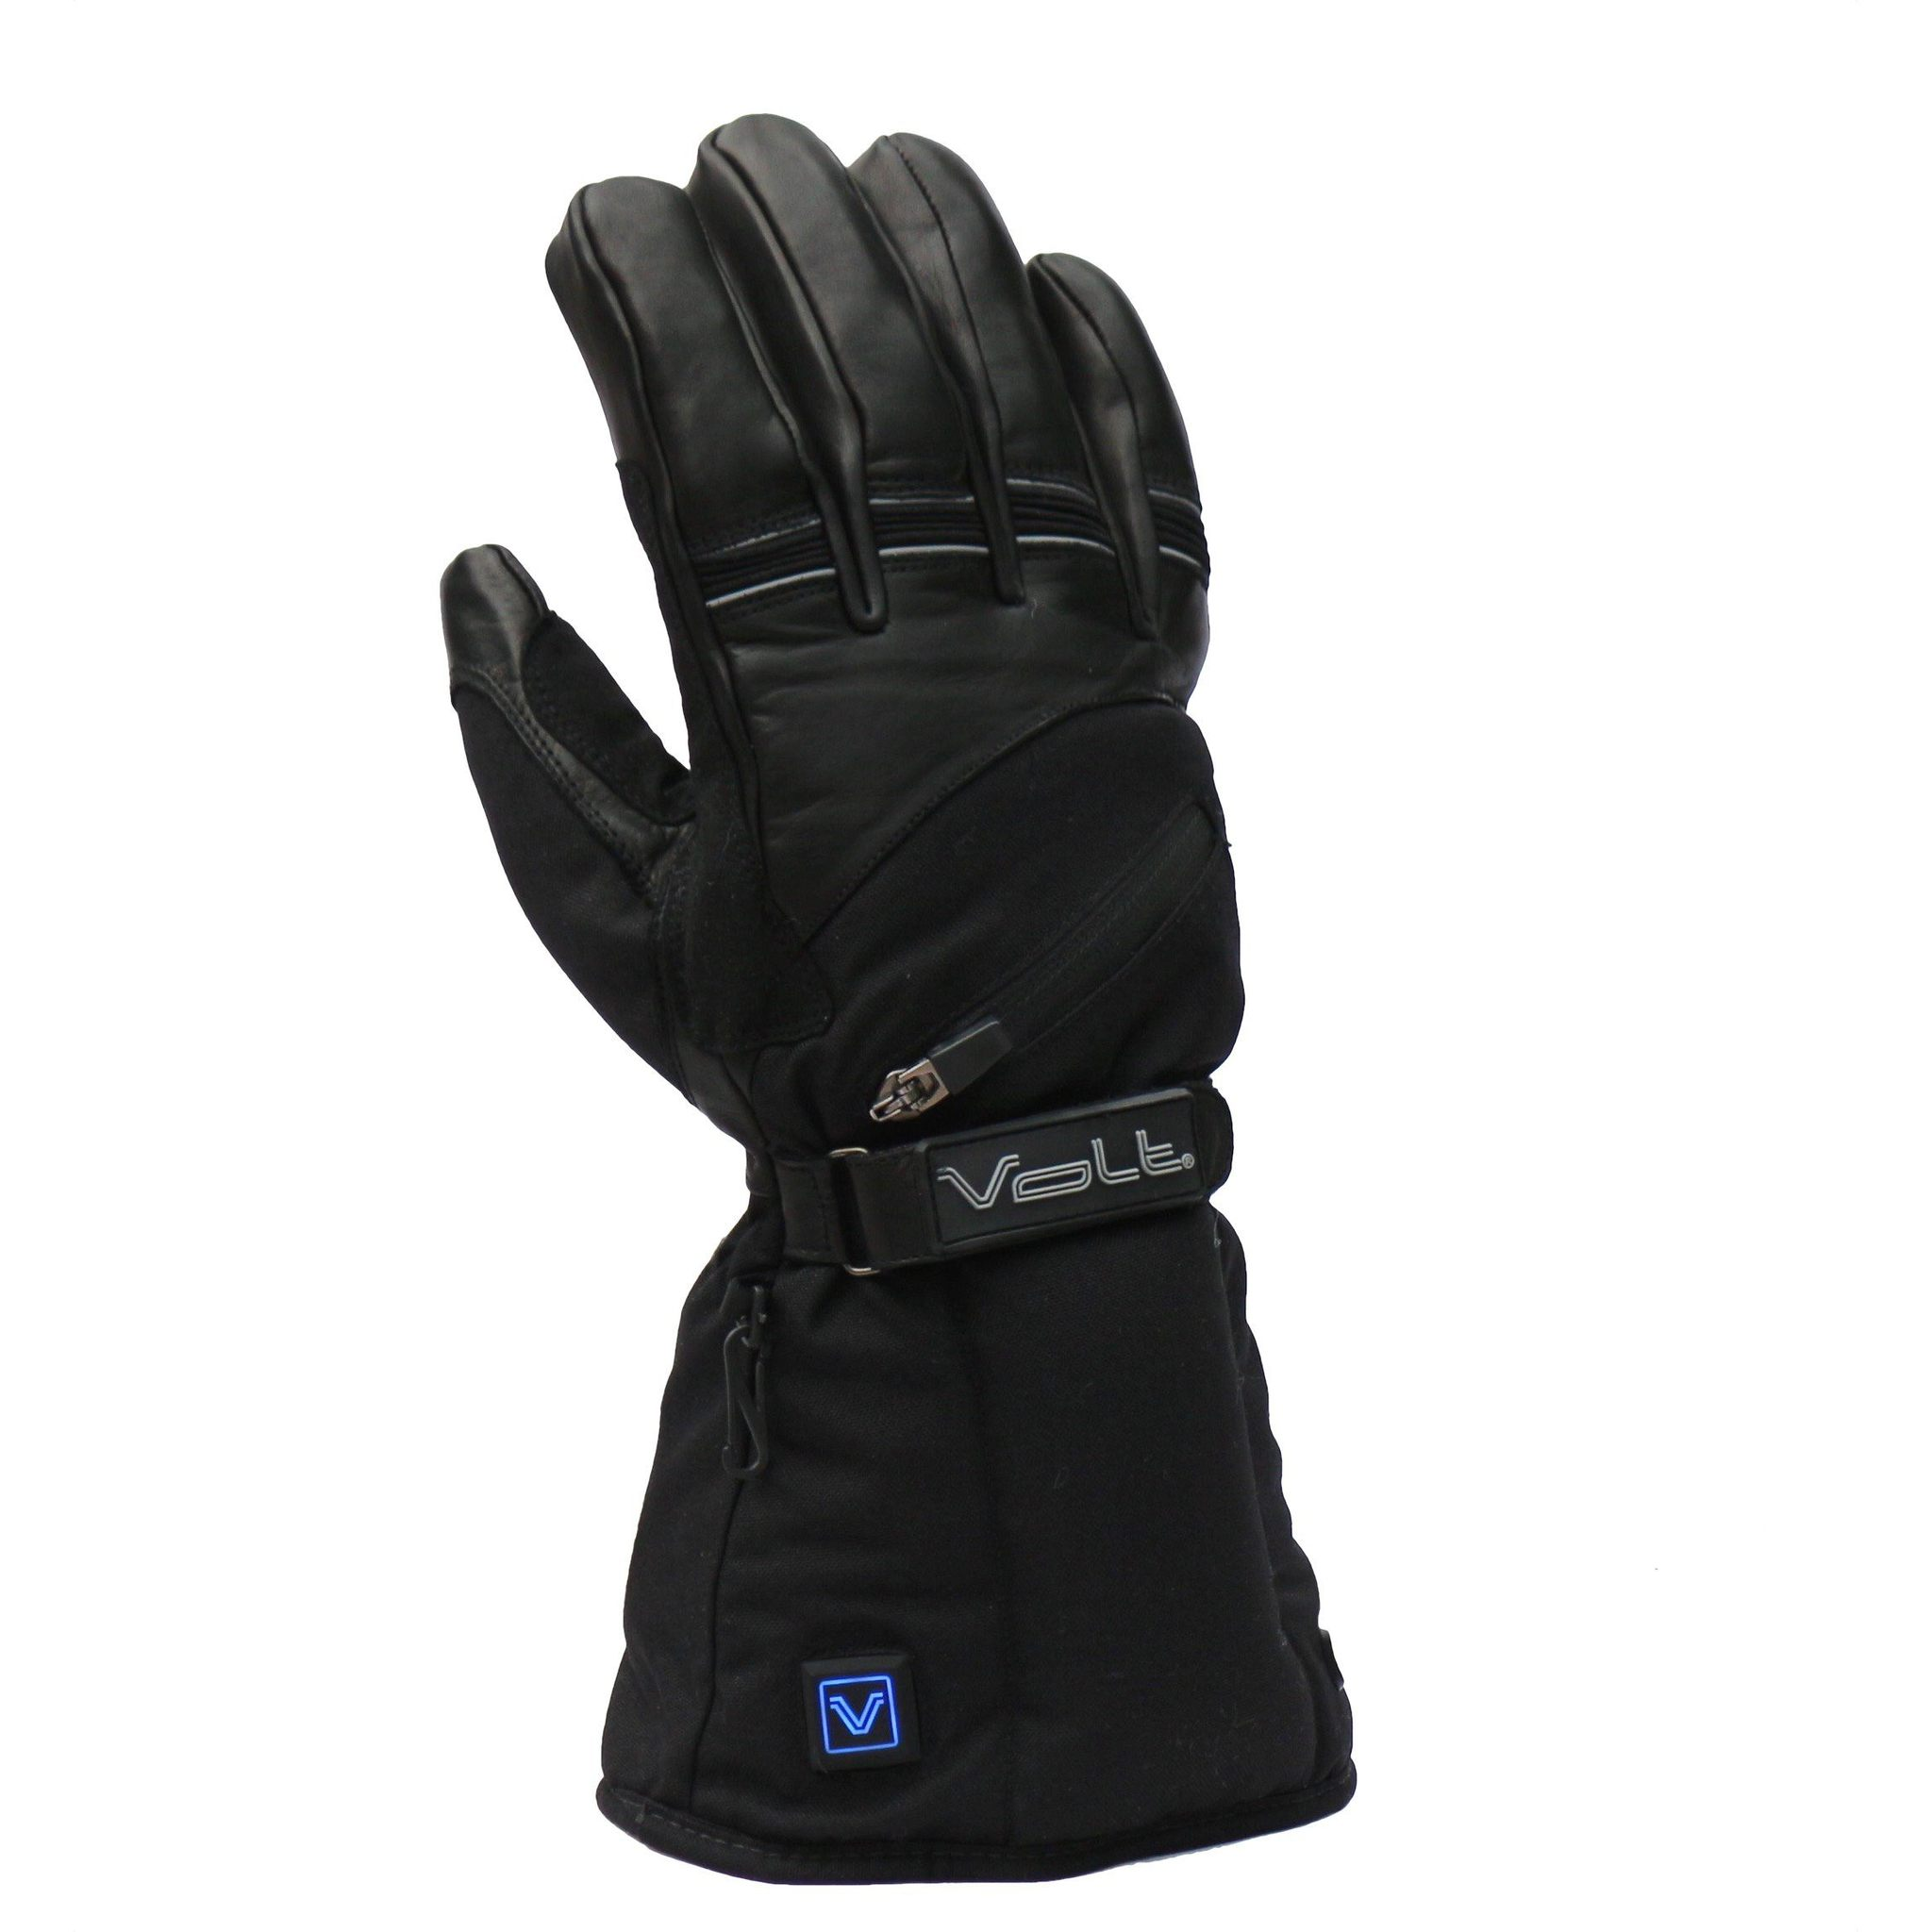 best golf gifts - heated golf gloves